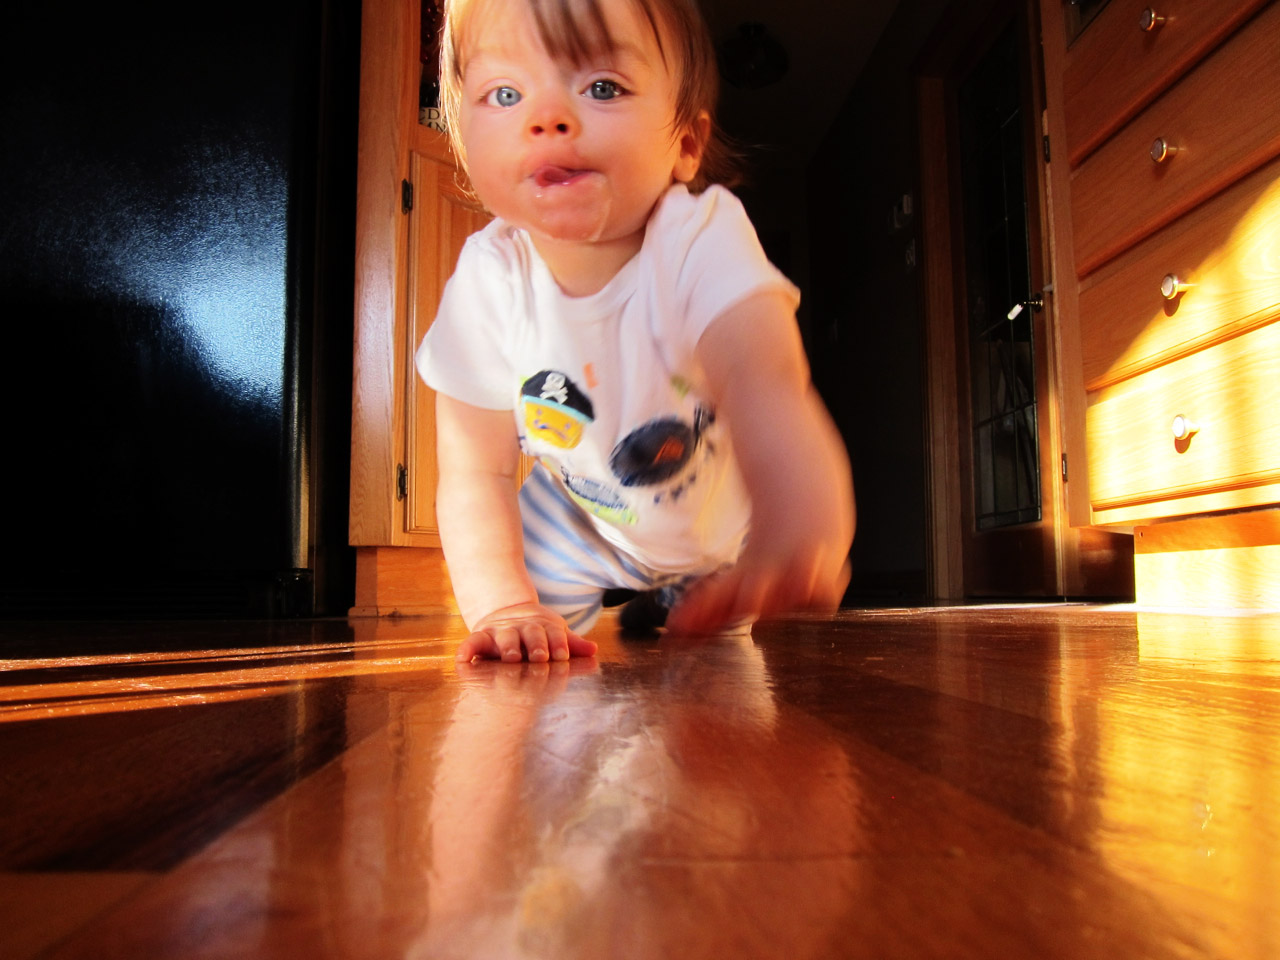 Boo crawling and drooling